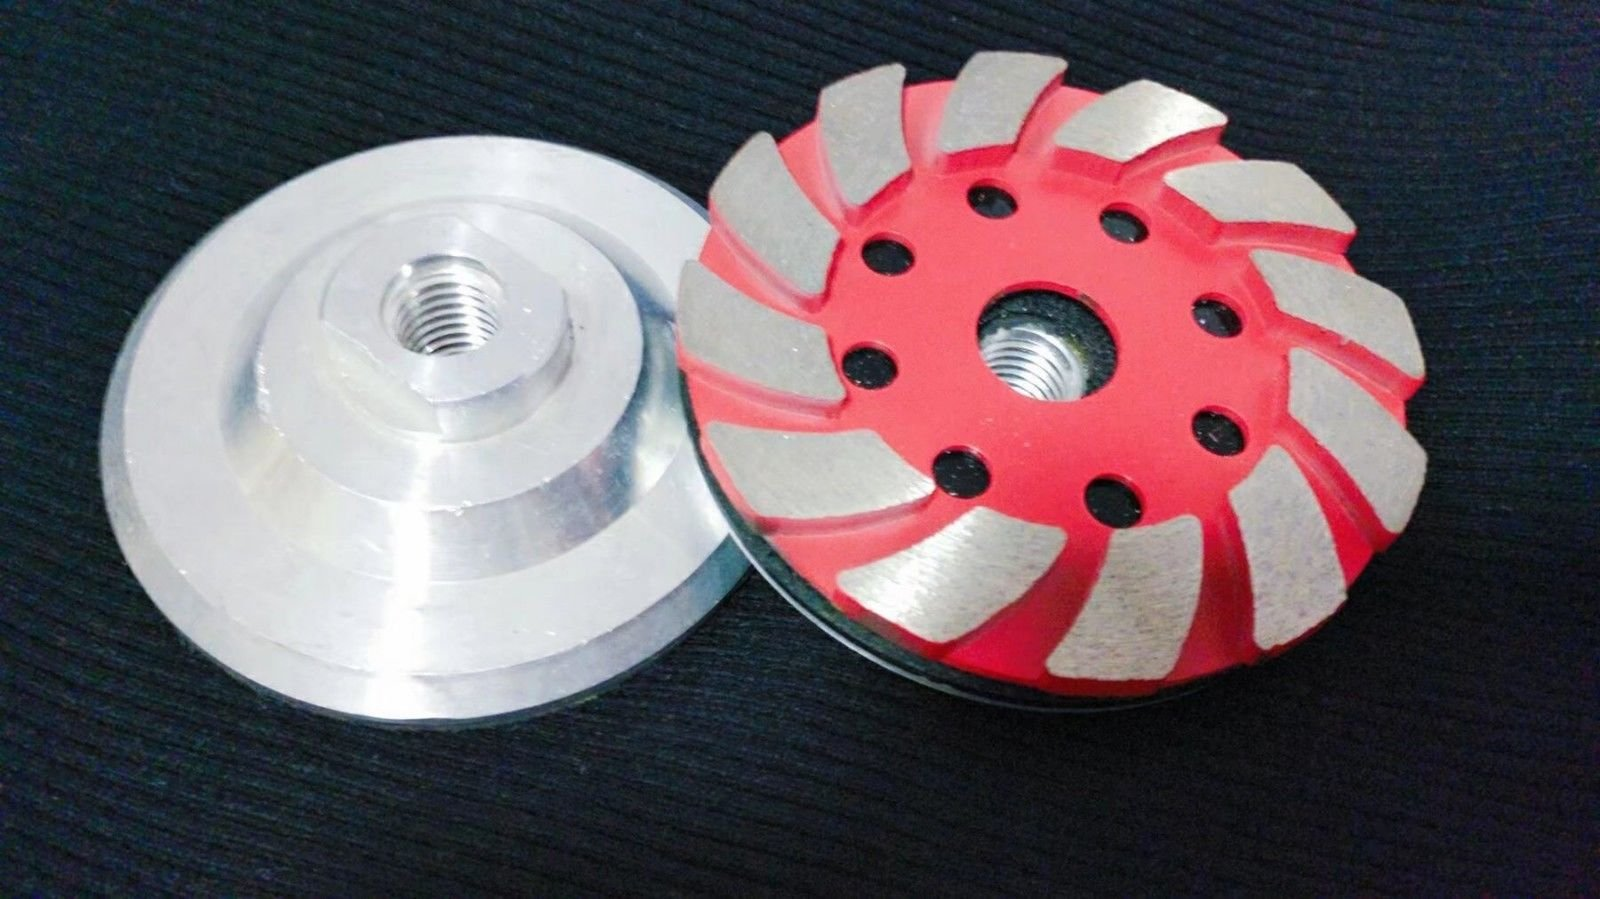 4-Inch Diamond Aluminum Based Turbo Grinding cup wheel concrete stone terrazzo floor slabs masonry surface stain remove smoothing coating lippage mortar removal